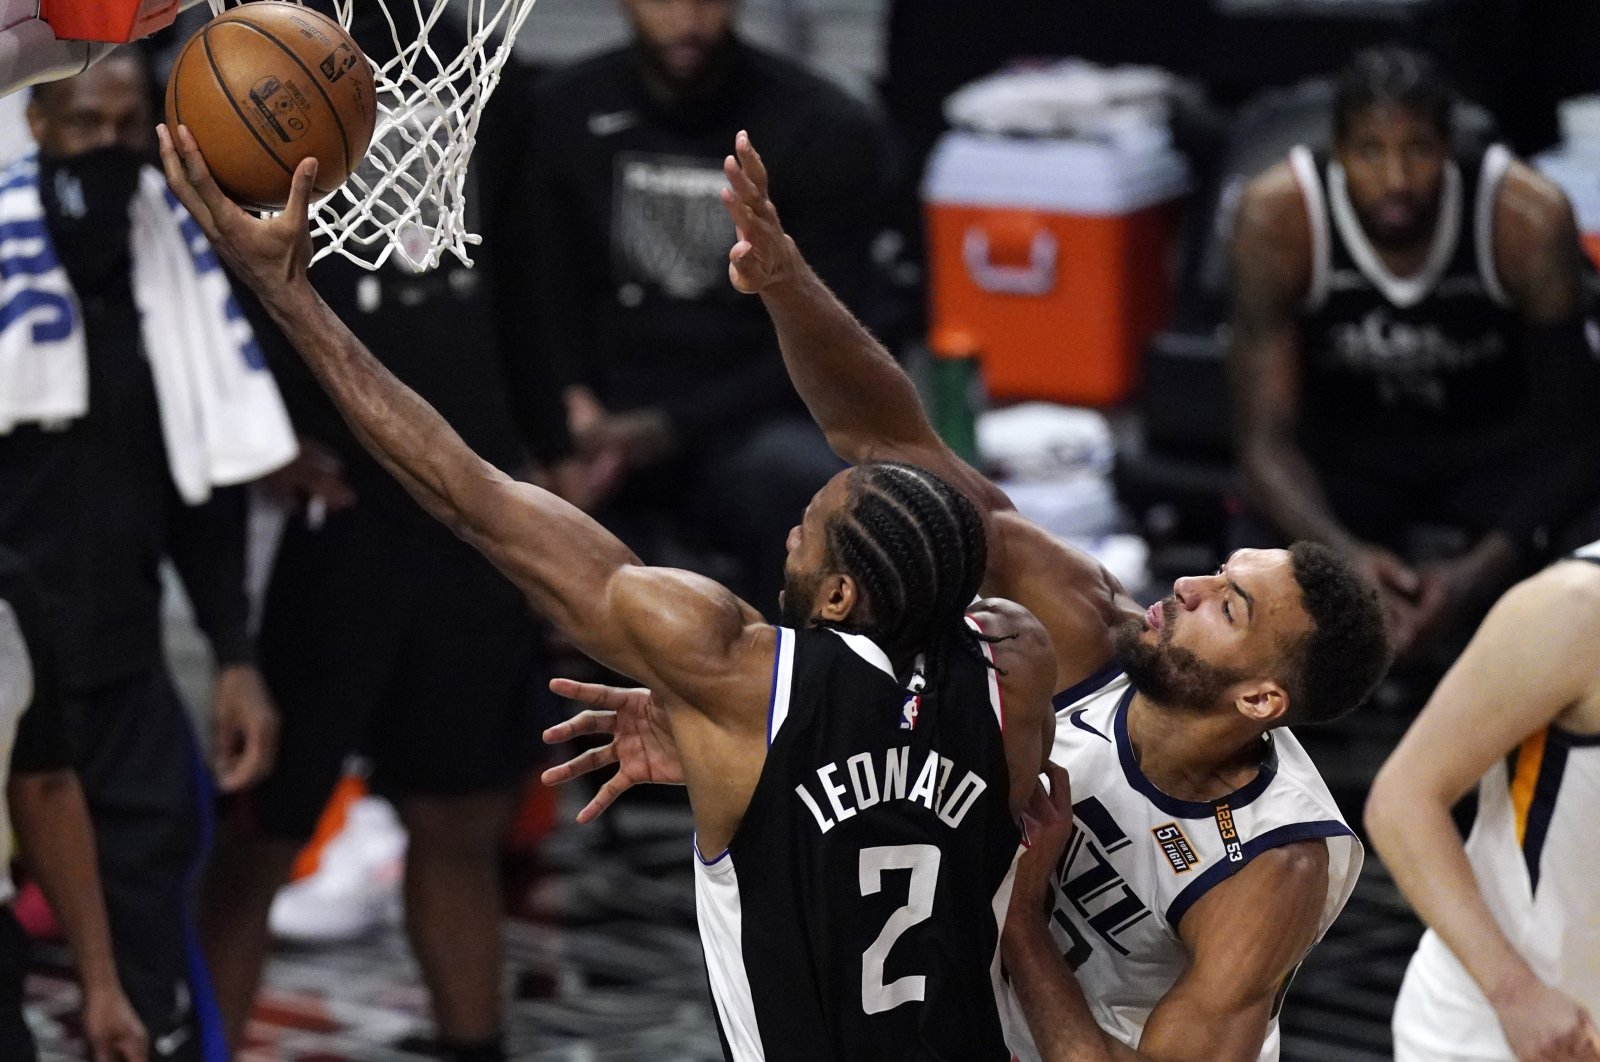 Los Angeles Clippers forward Kawhi Leonard (L) shoots as Utah Jazz center Rudy Gobert defends during the second half of Game 3 of a second-round NBA Playoffs match, Saturday, June 12, 2021, Los Angeles, U.S. (AP Photo)